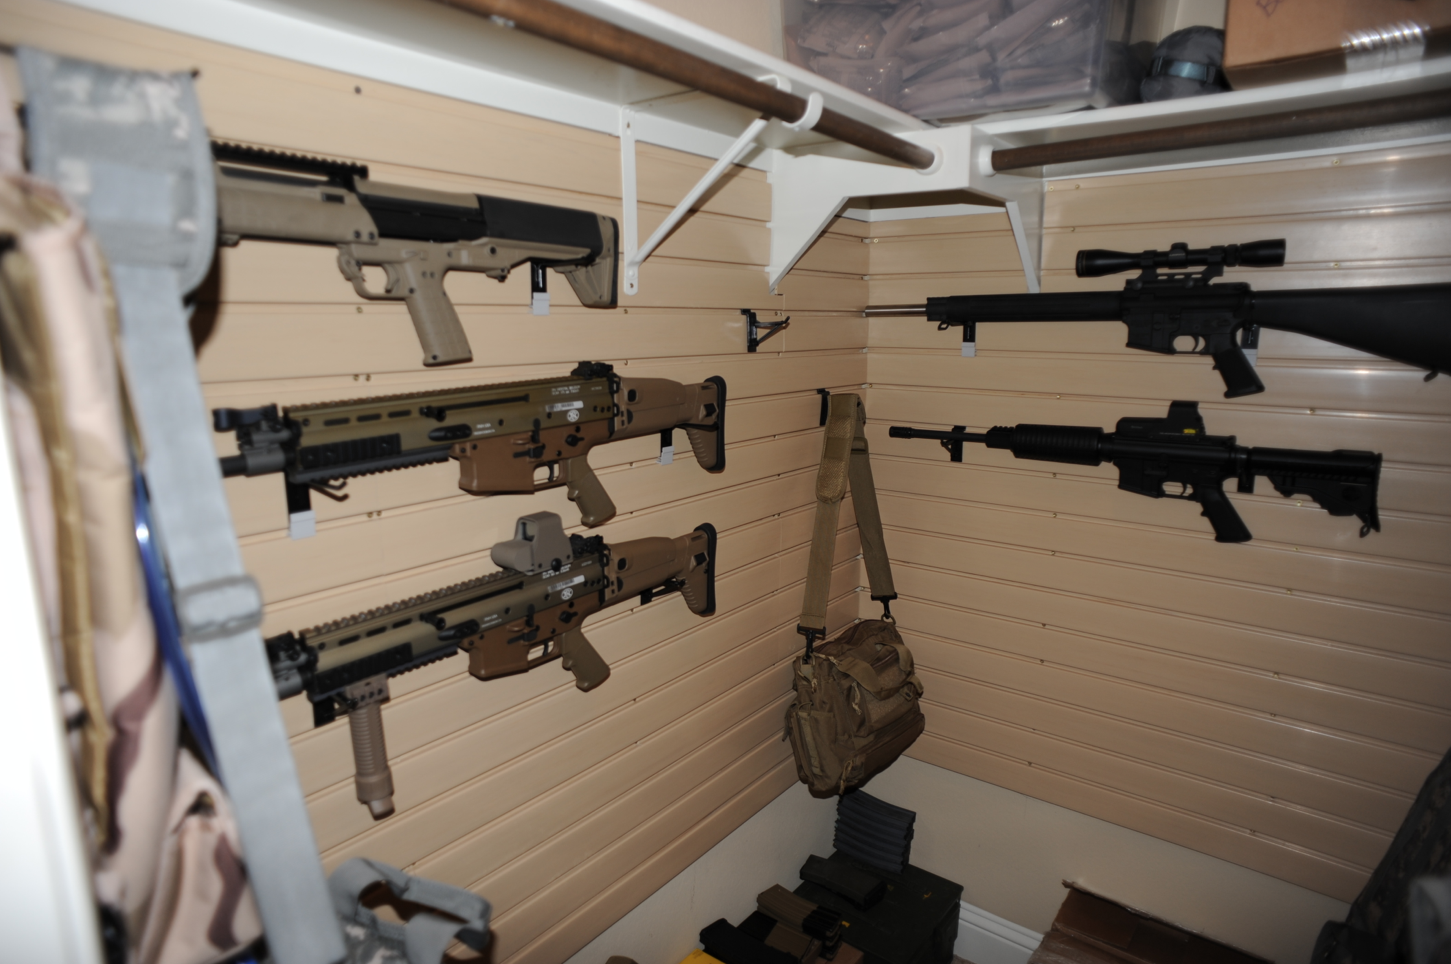 Some pics of my Kel-Tec KSG... and other guns ;)-screen_shot_2012_09_04_at_11.18.13_am.png